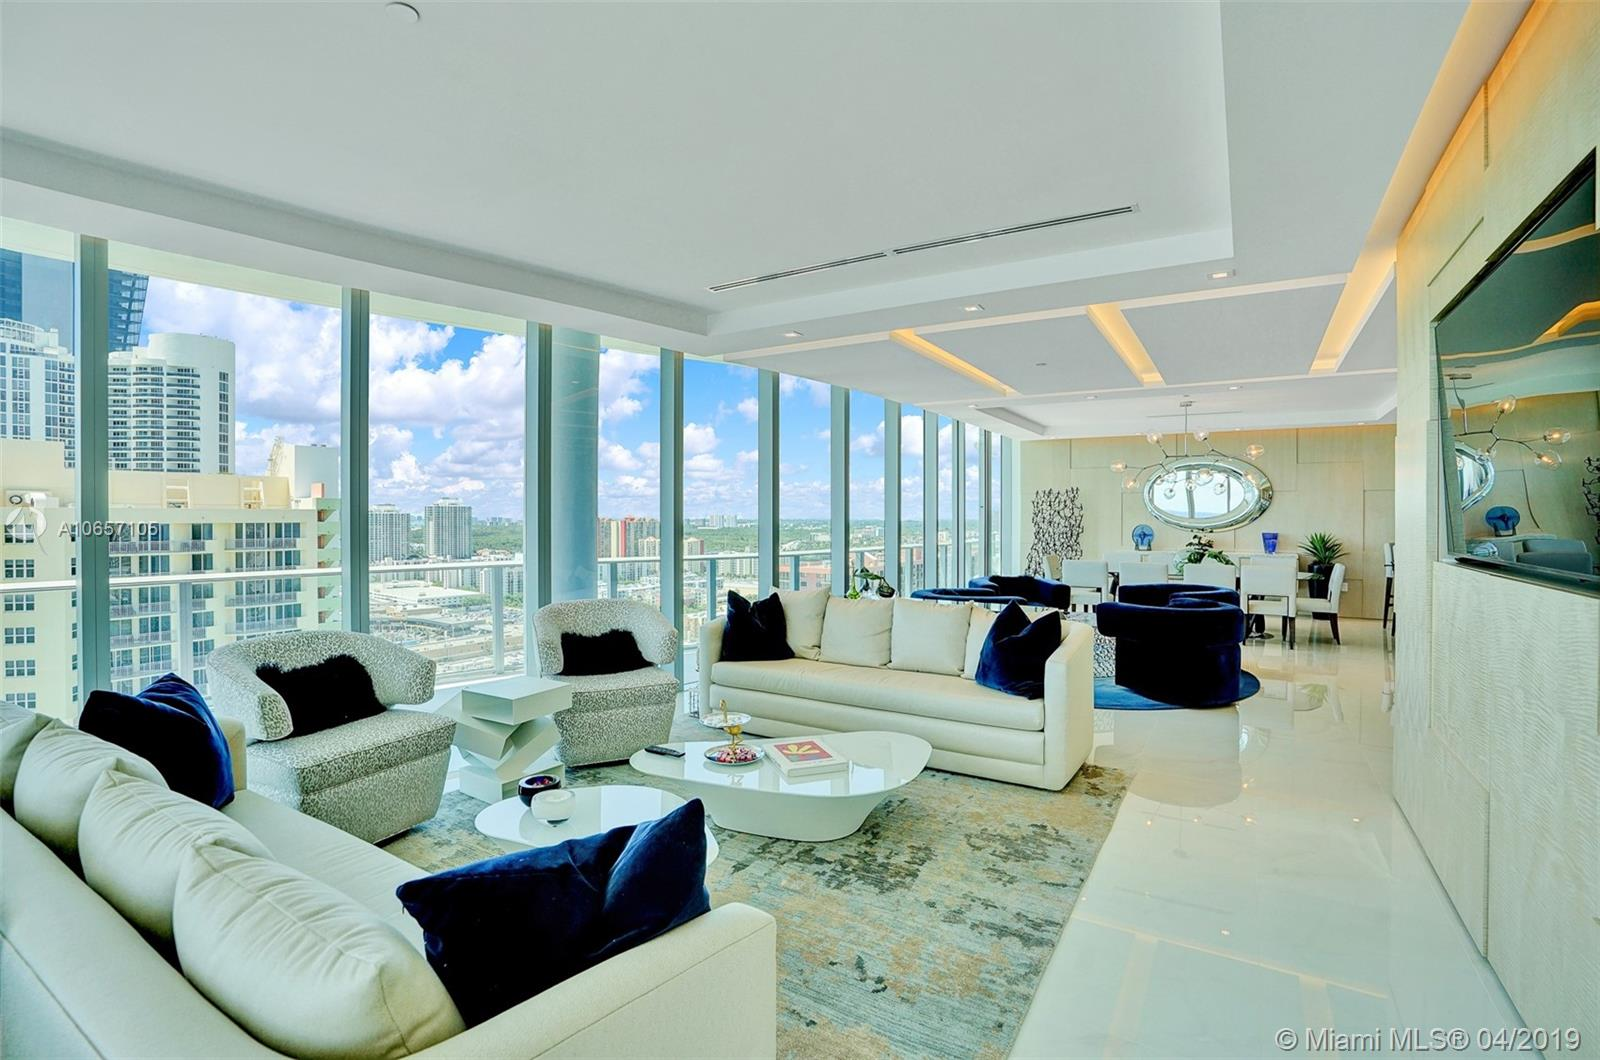 17475 Collins Ave, Unit #2001 Luxury Real Estate